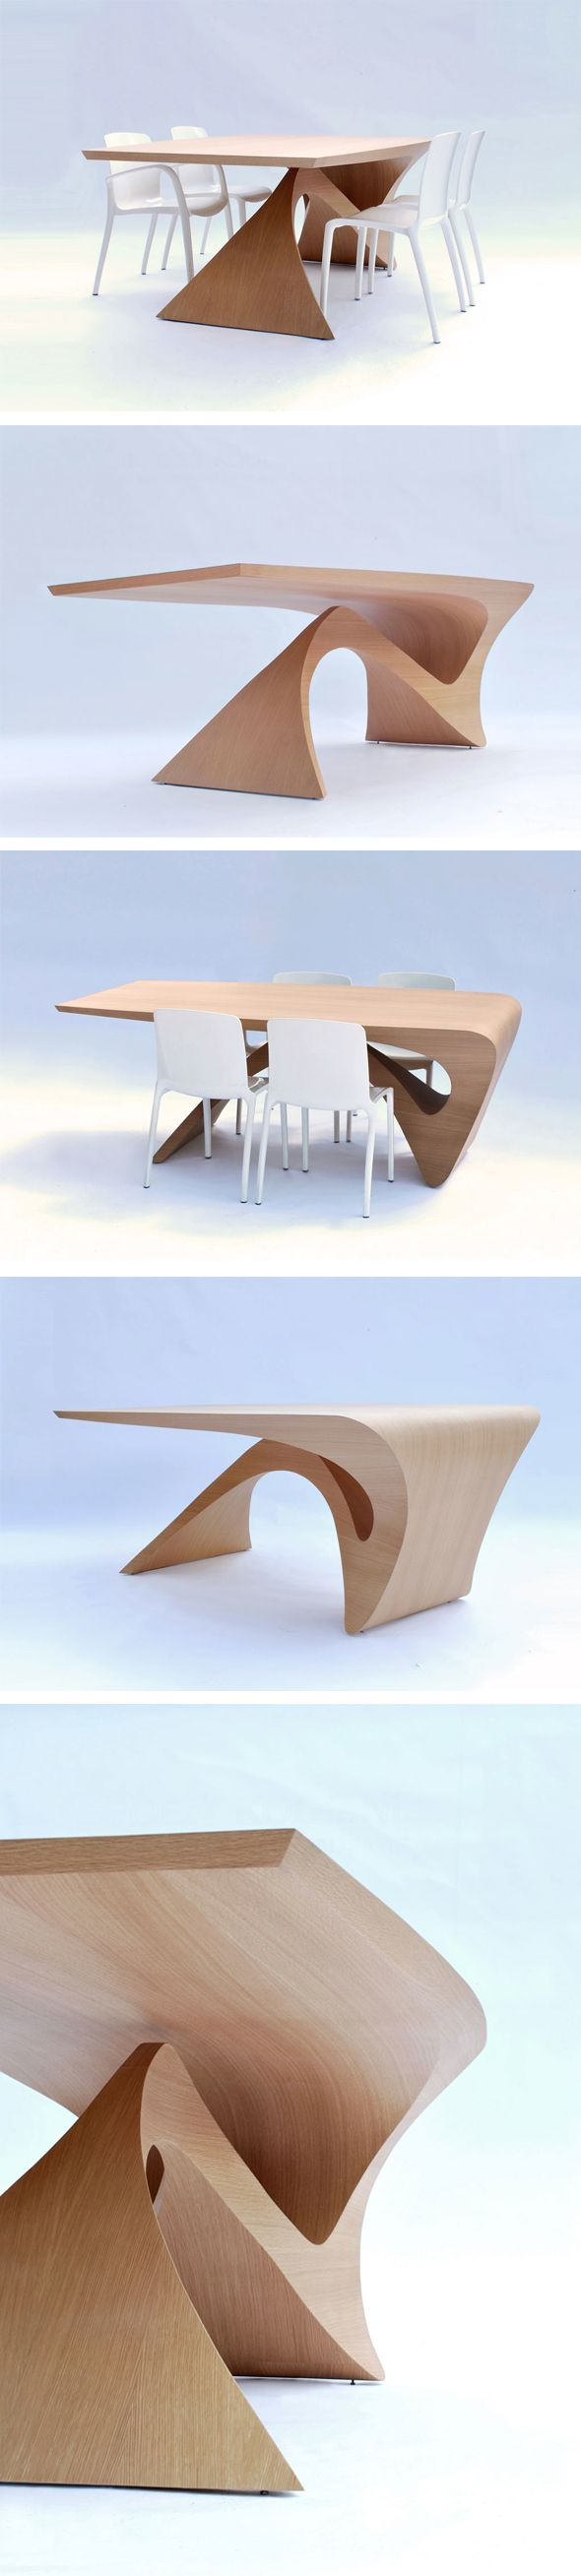 Schön Form Follows Function Table Par Daan Mulder